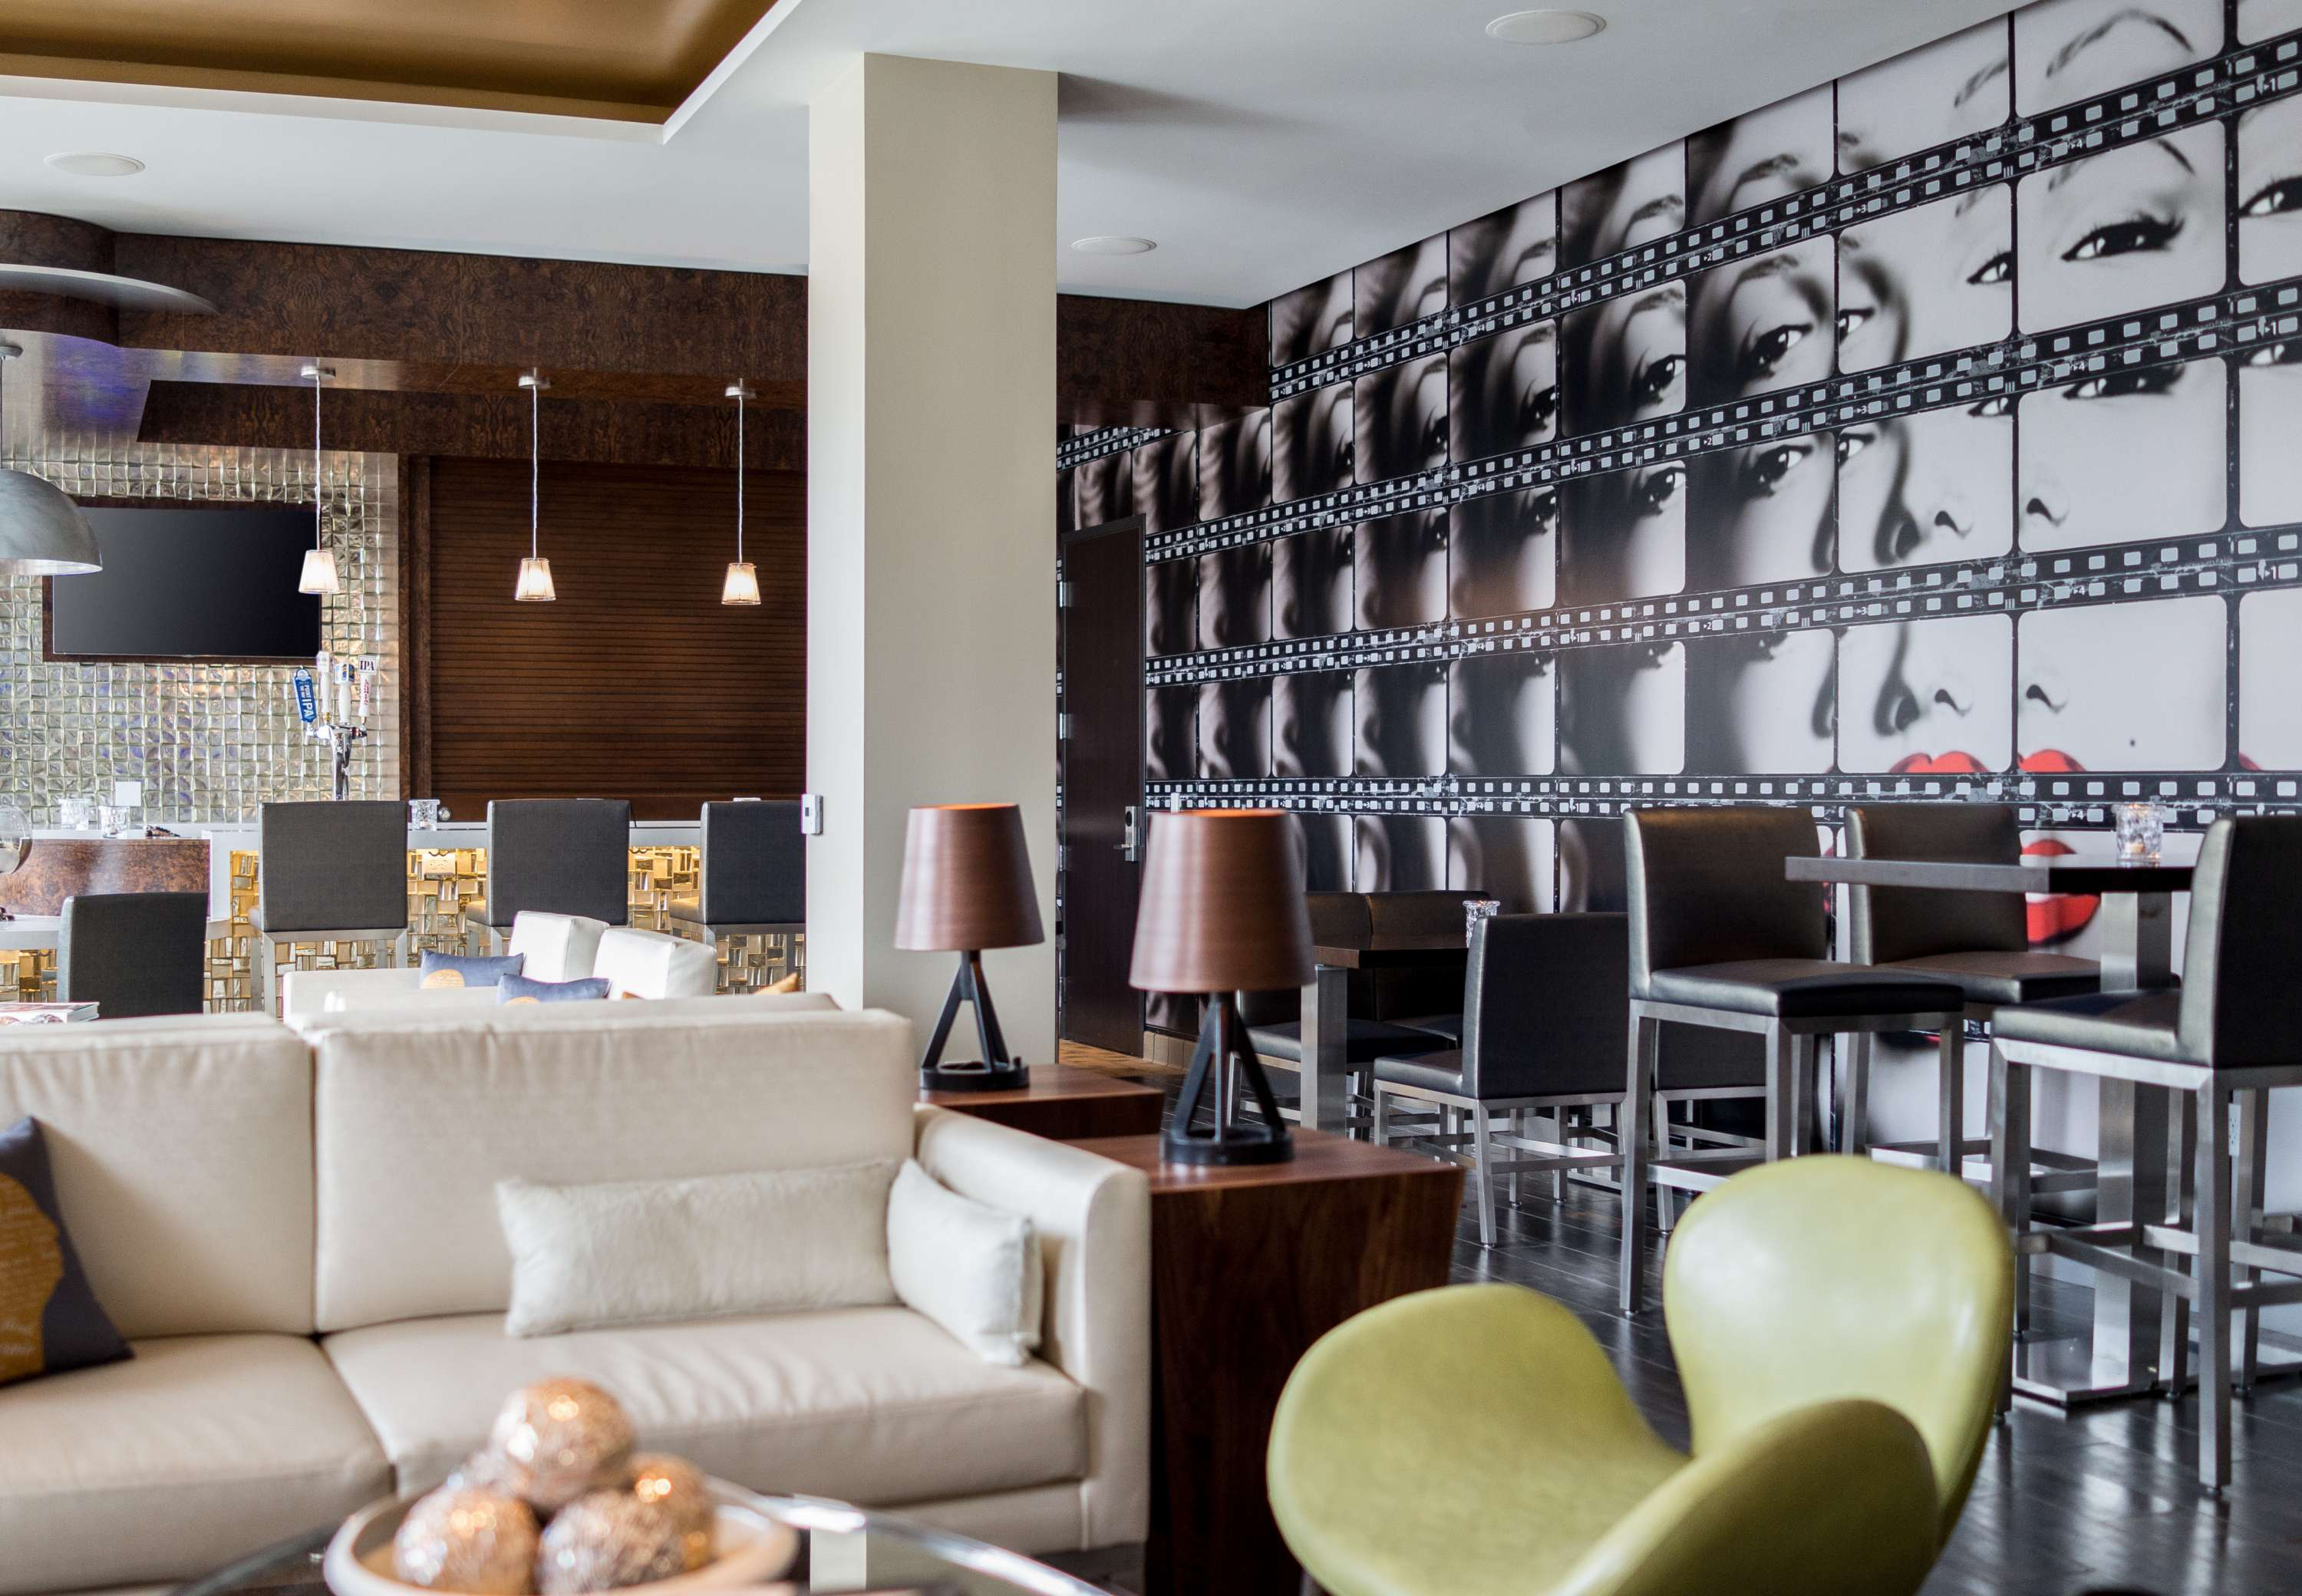 Art Details Marilyn Monroe Art Wall - Inspired by the icon herself, our Marilyn Monroe art wall allows guests to revisit old Hollywood while enjoying drinks and socializing in a stylish lounge-like se